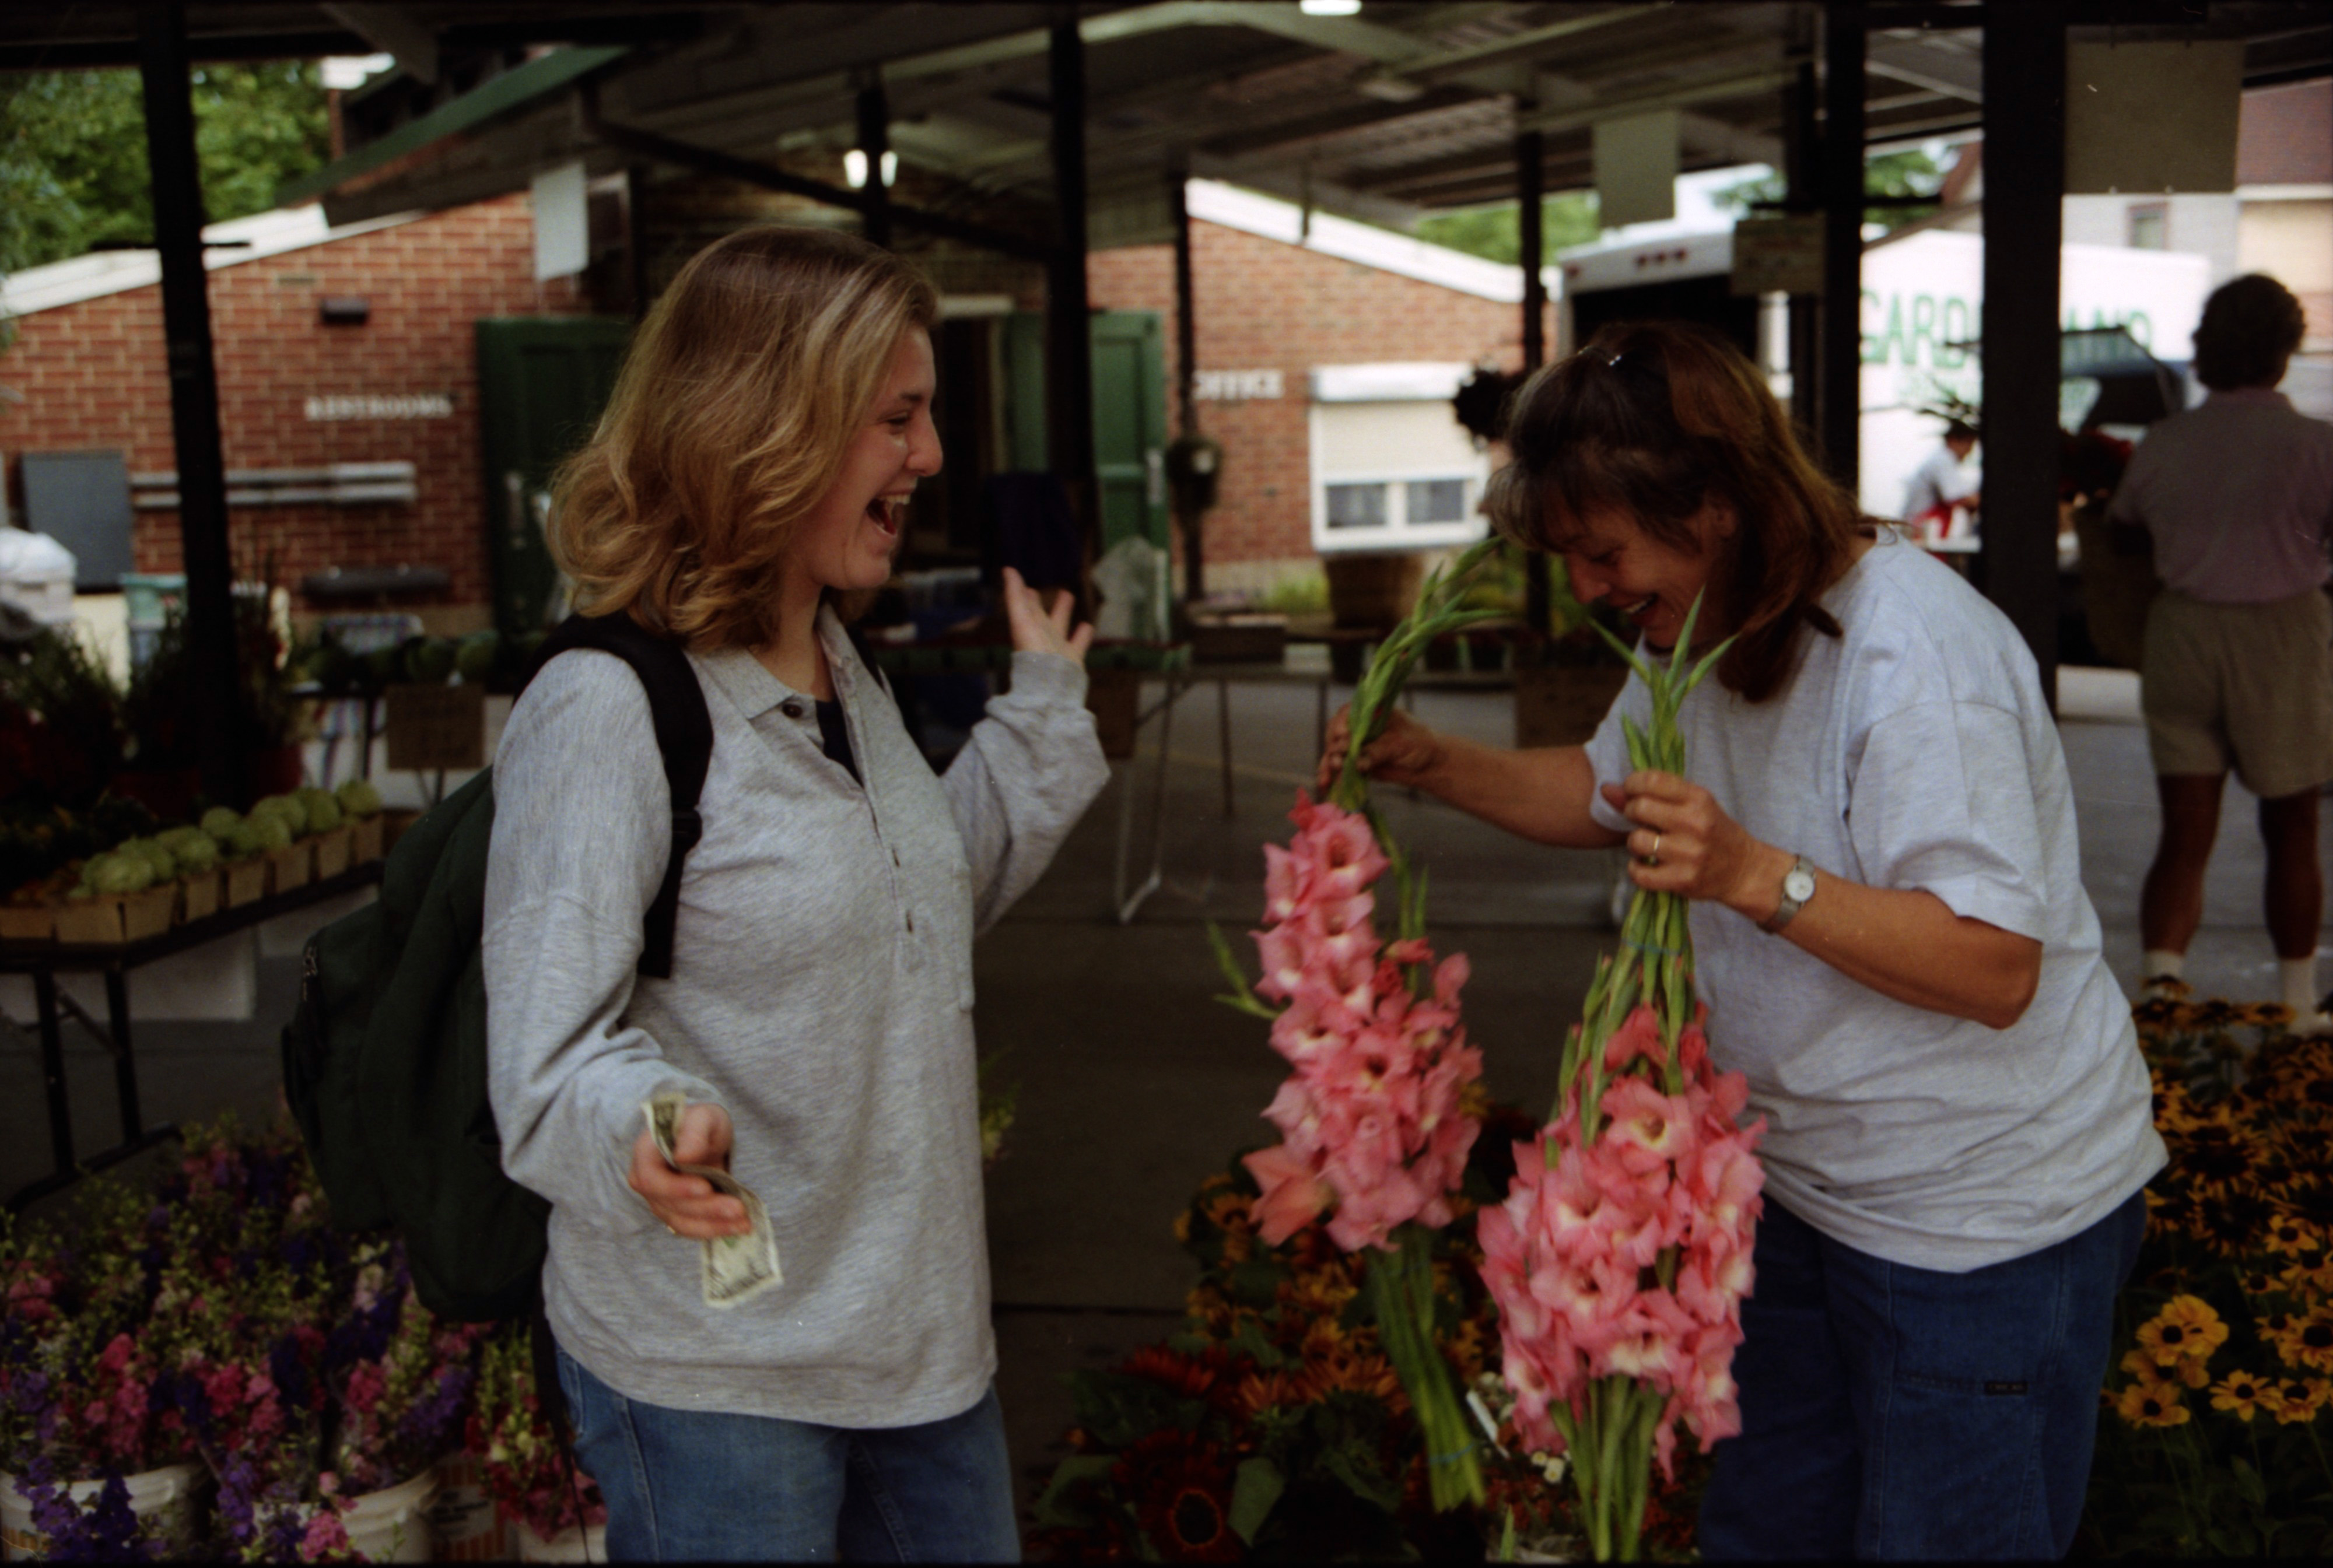 Pat Devulder, Flower Vendor At The Ann Arbor Farmers Market, July 1997 image